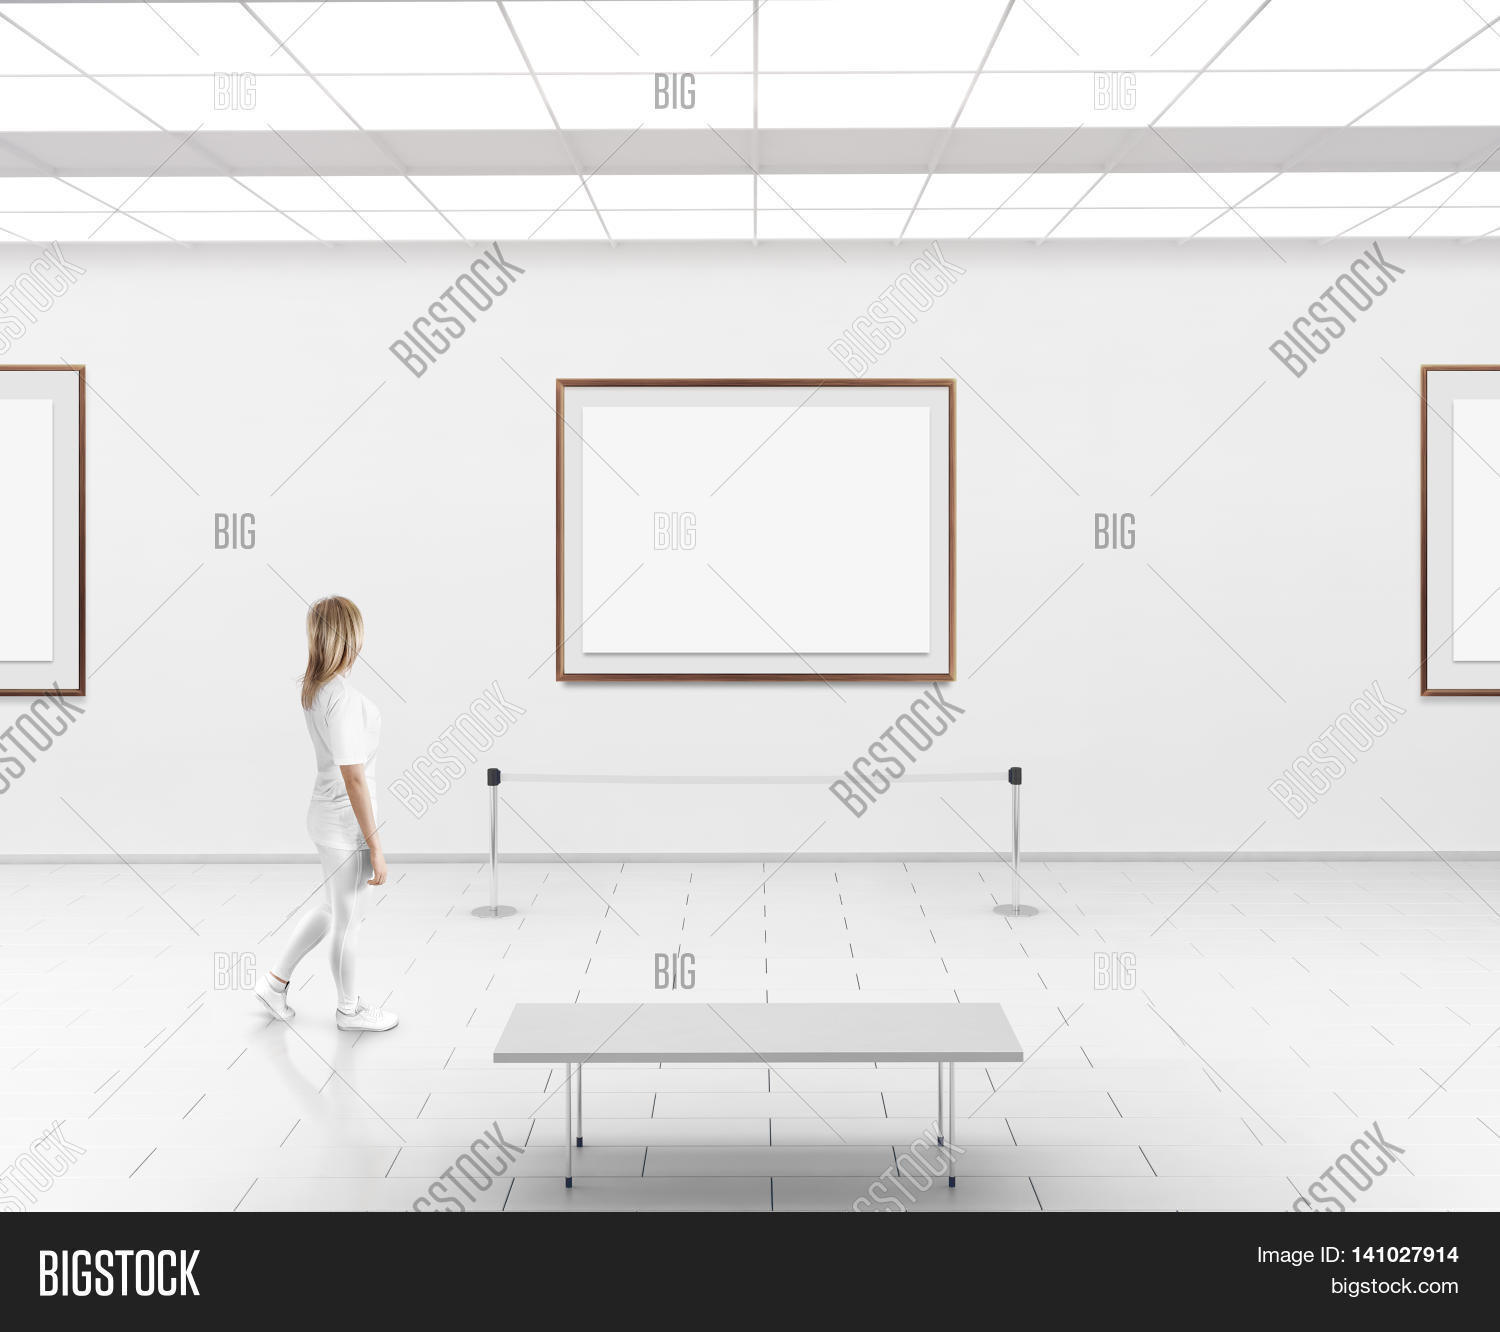 Modern Gallery Wall Image & Photo (Free Trial) | Bigstock